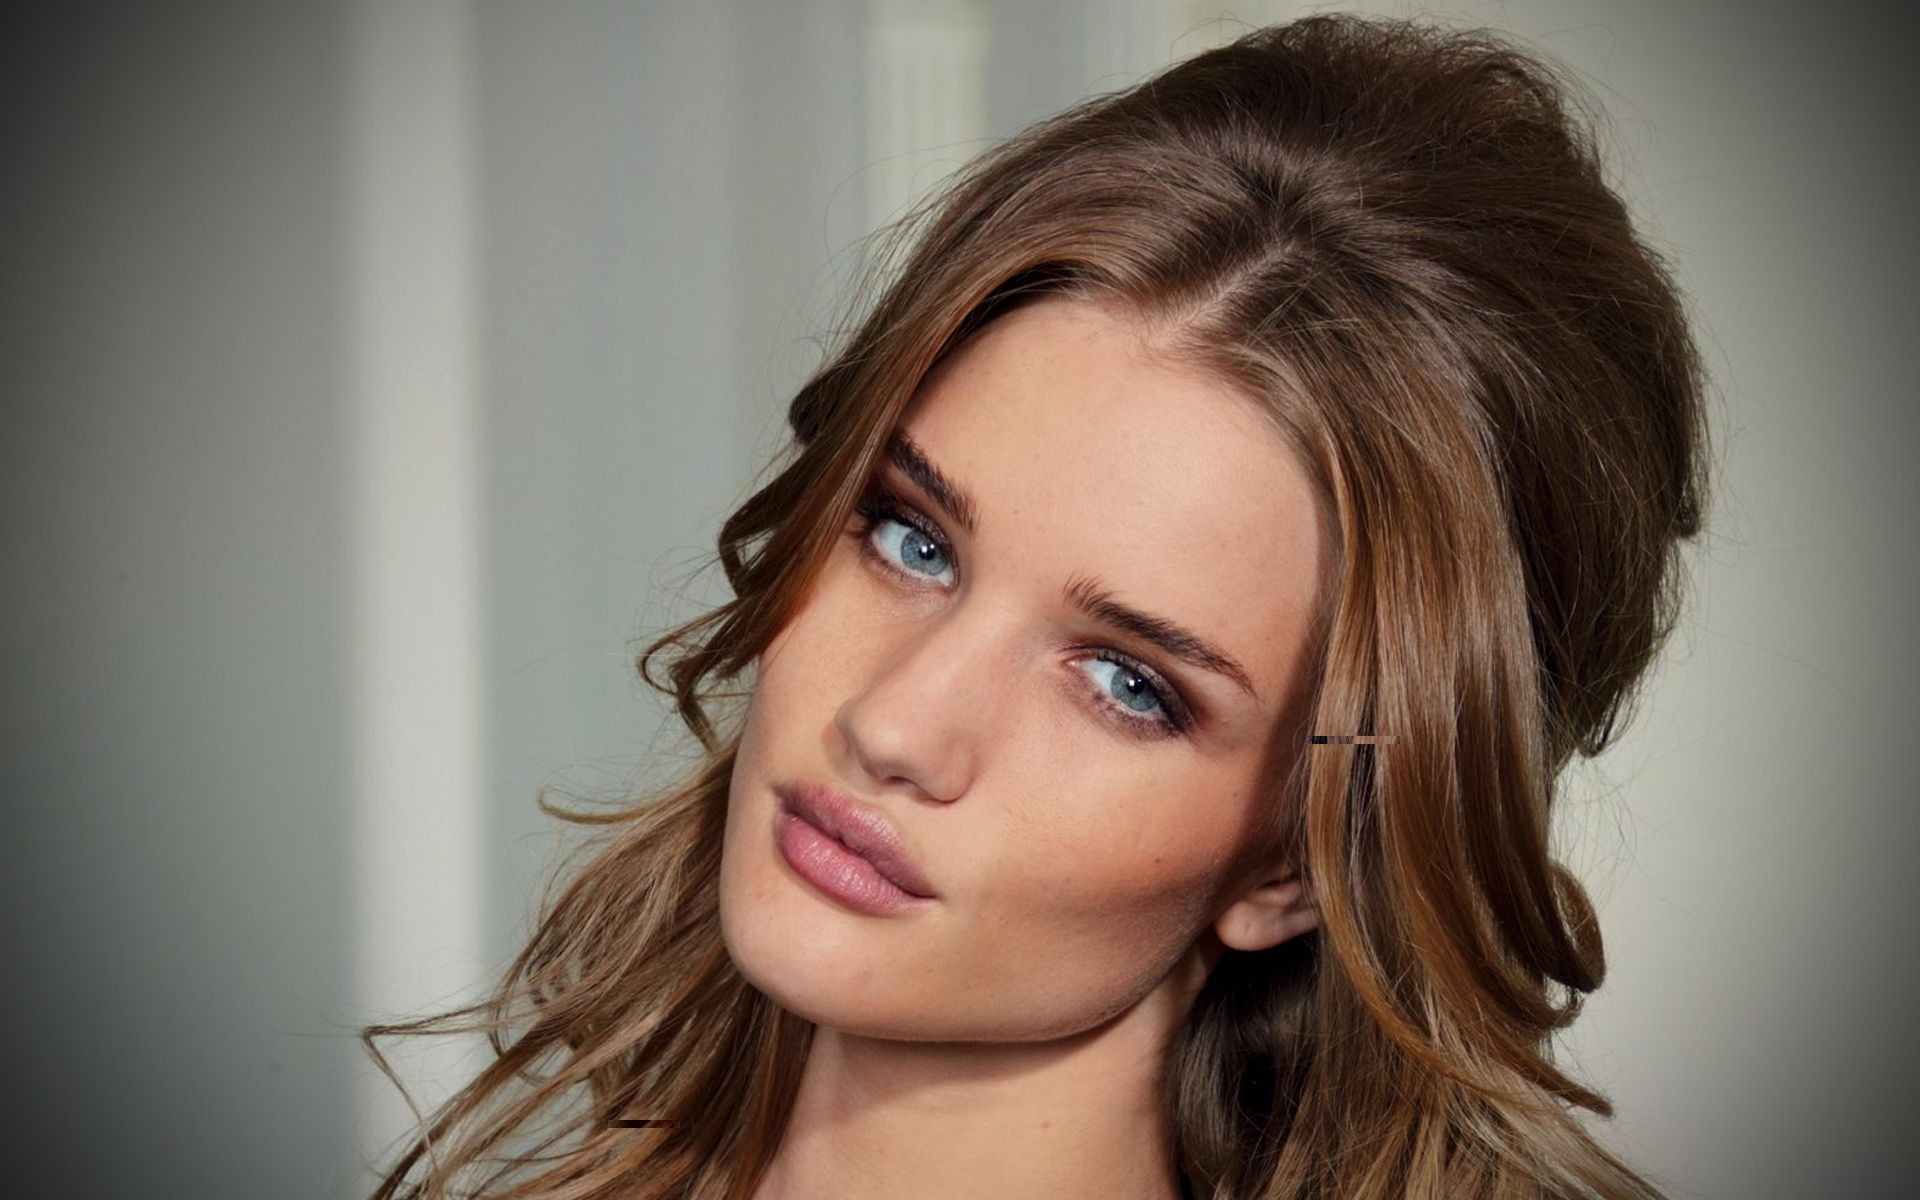 Rosie Huntington Whiteley #005 - 1920x1200 Wallpapers Pictures Photos Images